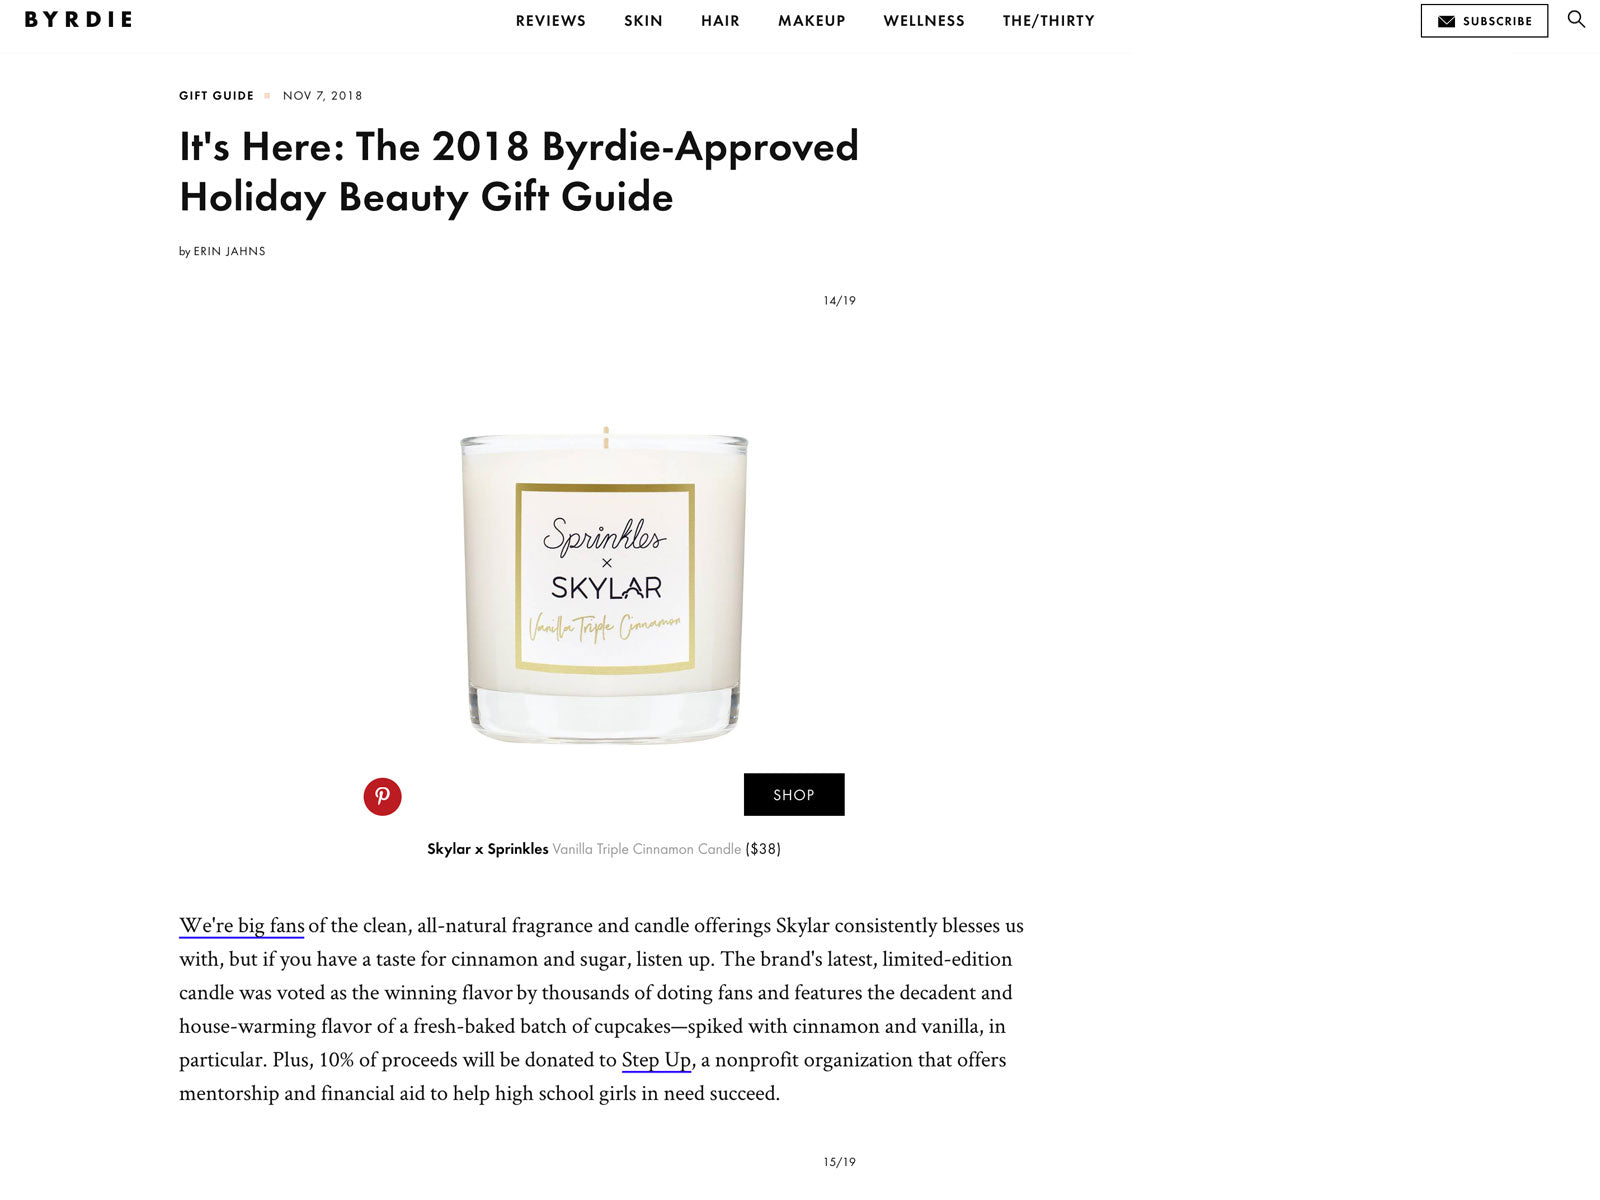 Skylar Press: 2018 Byrdie-Approved Holiday Beauty Gift Guide